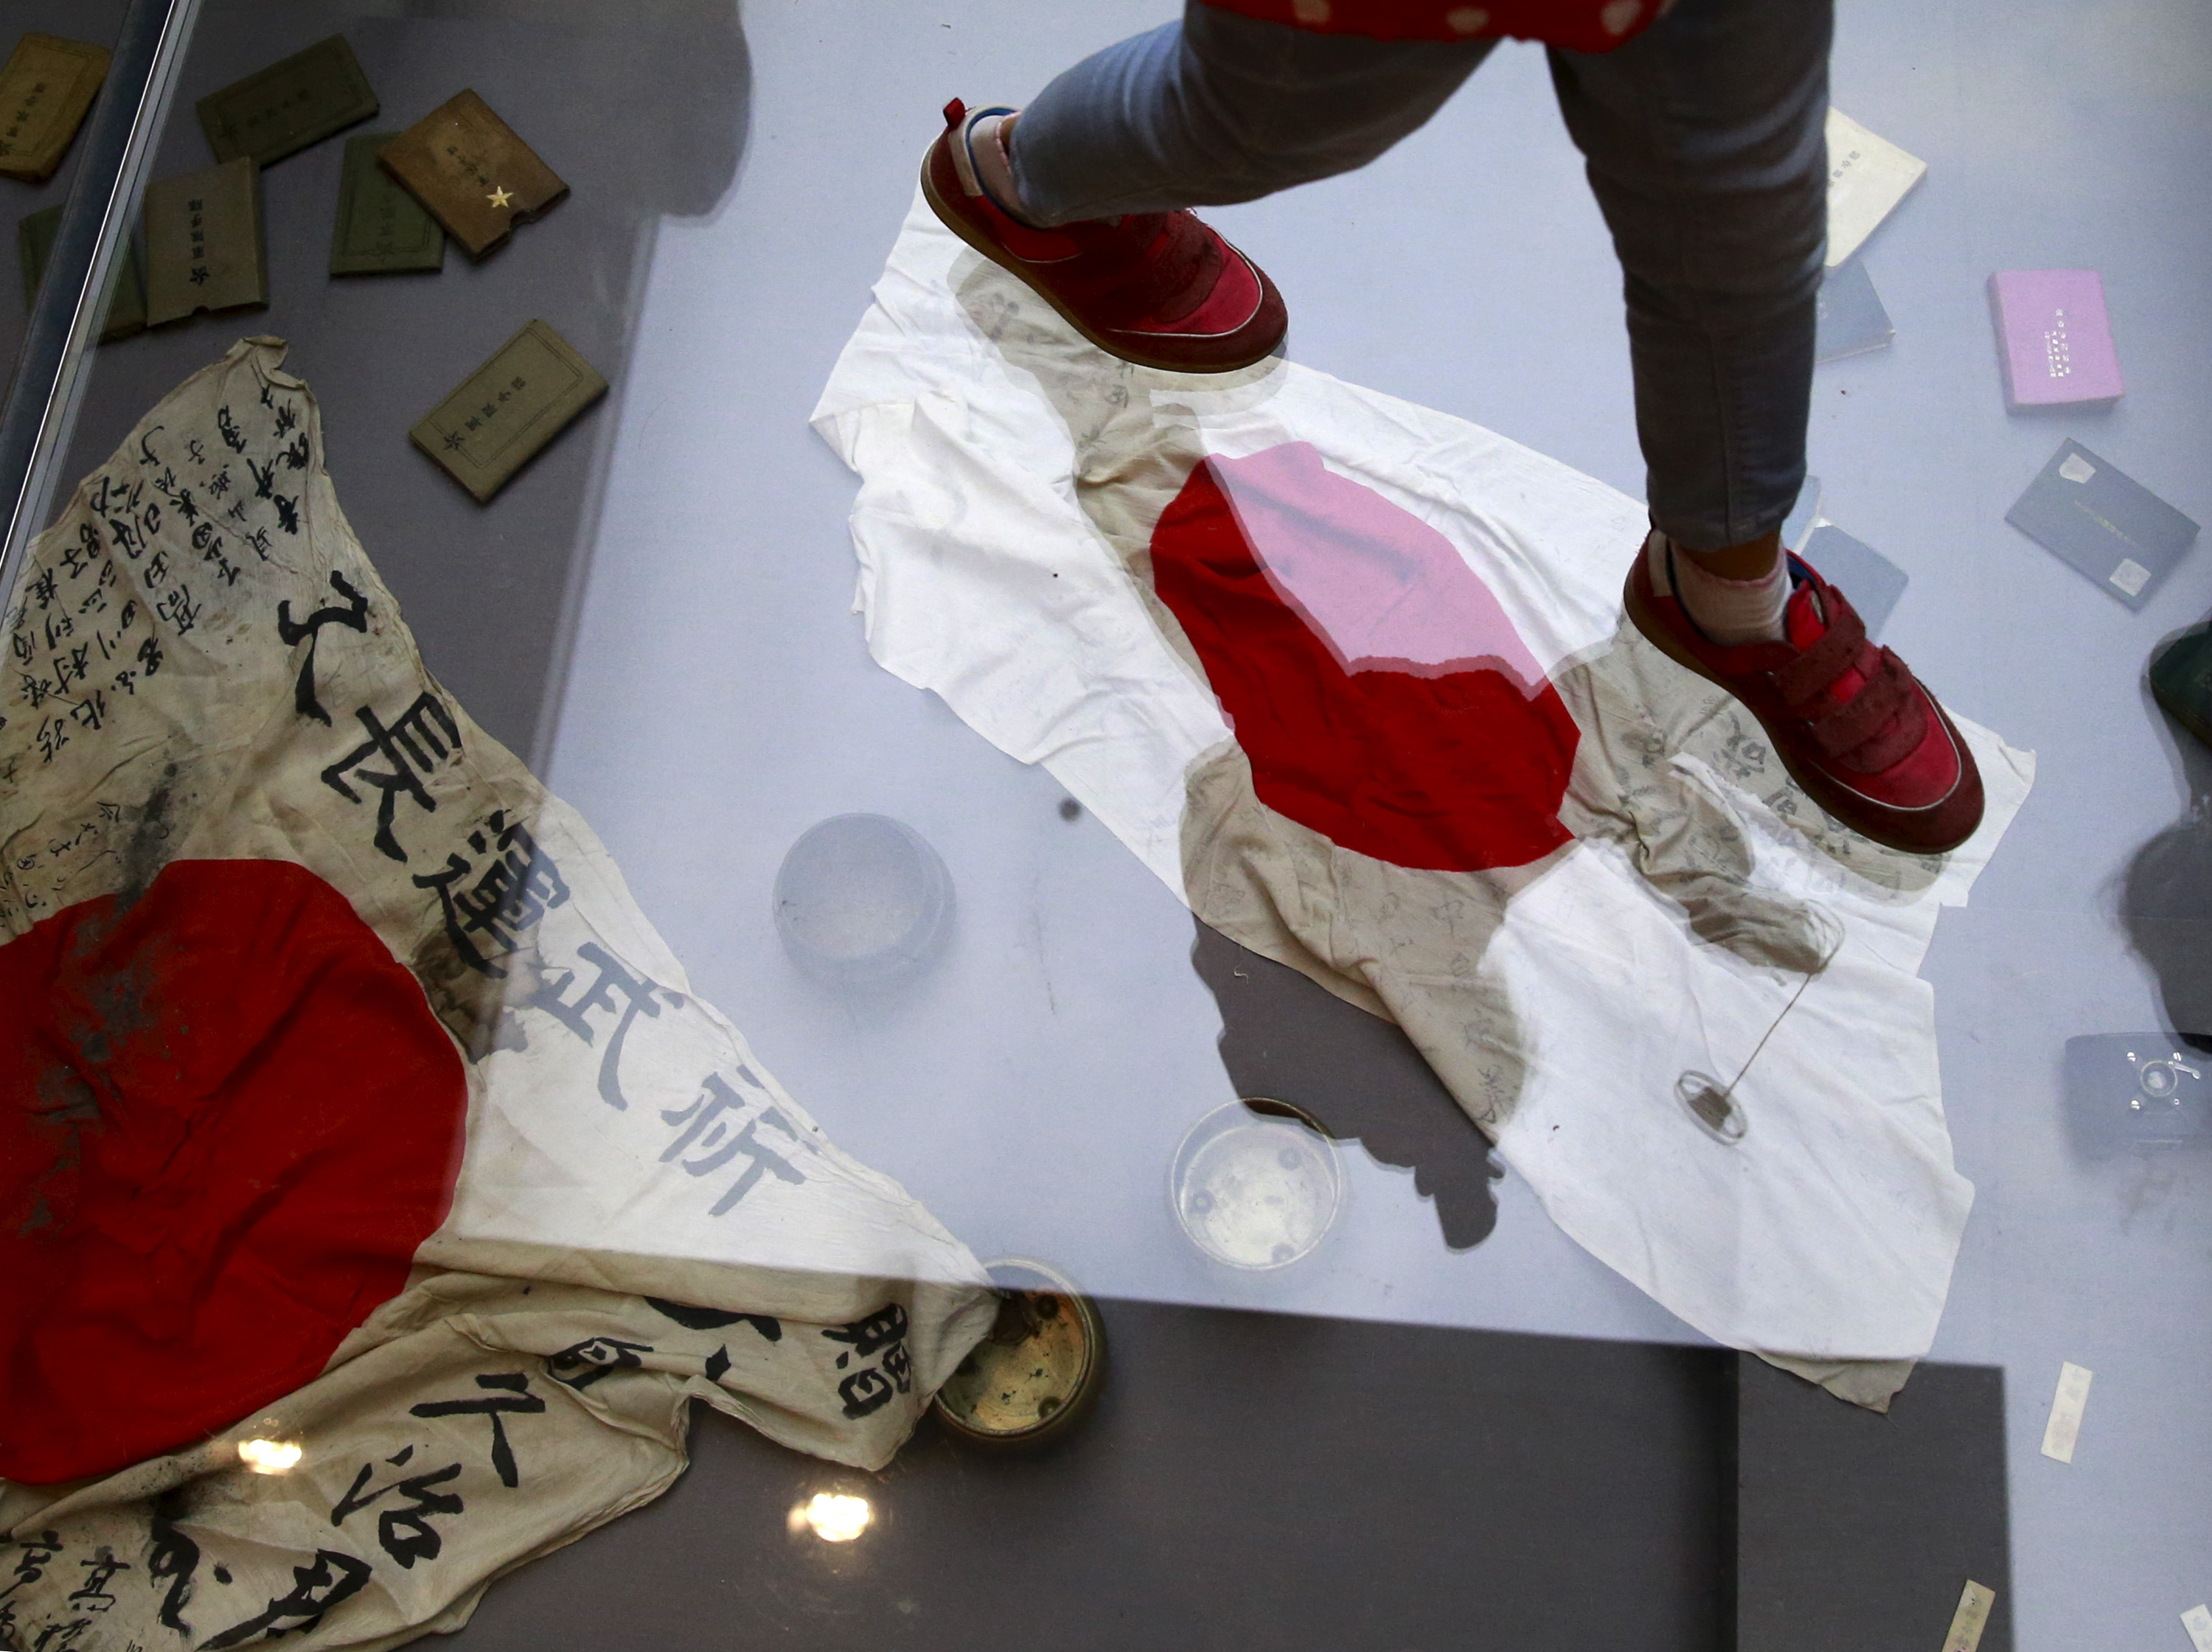 A visitor walks on a glass flooring above Japanese military flags seized by the Chinese People's Liberation Army (PLA) during World War II, at the Museum of the War of Chinese People's Resistance Against Japanese Aggression, in Beijing, China, Sept. ...